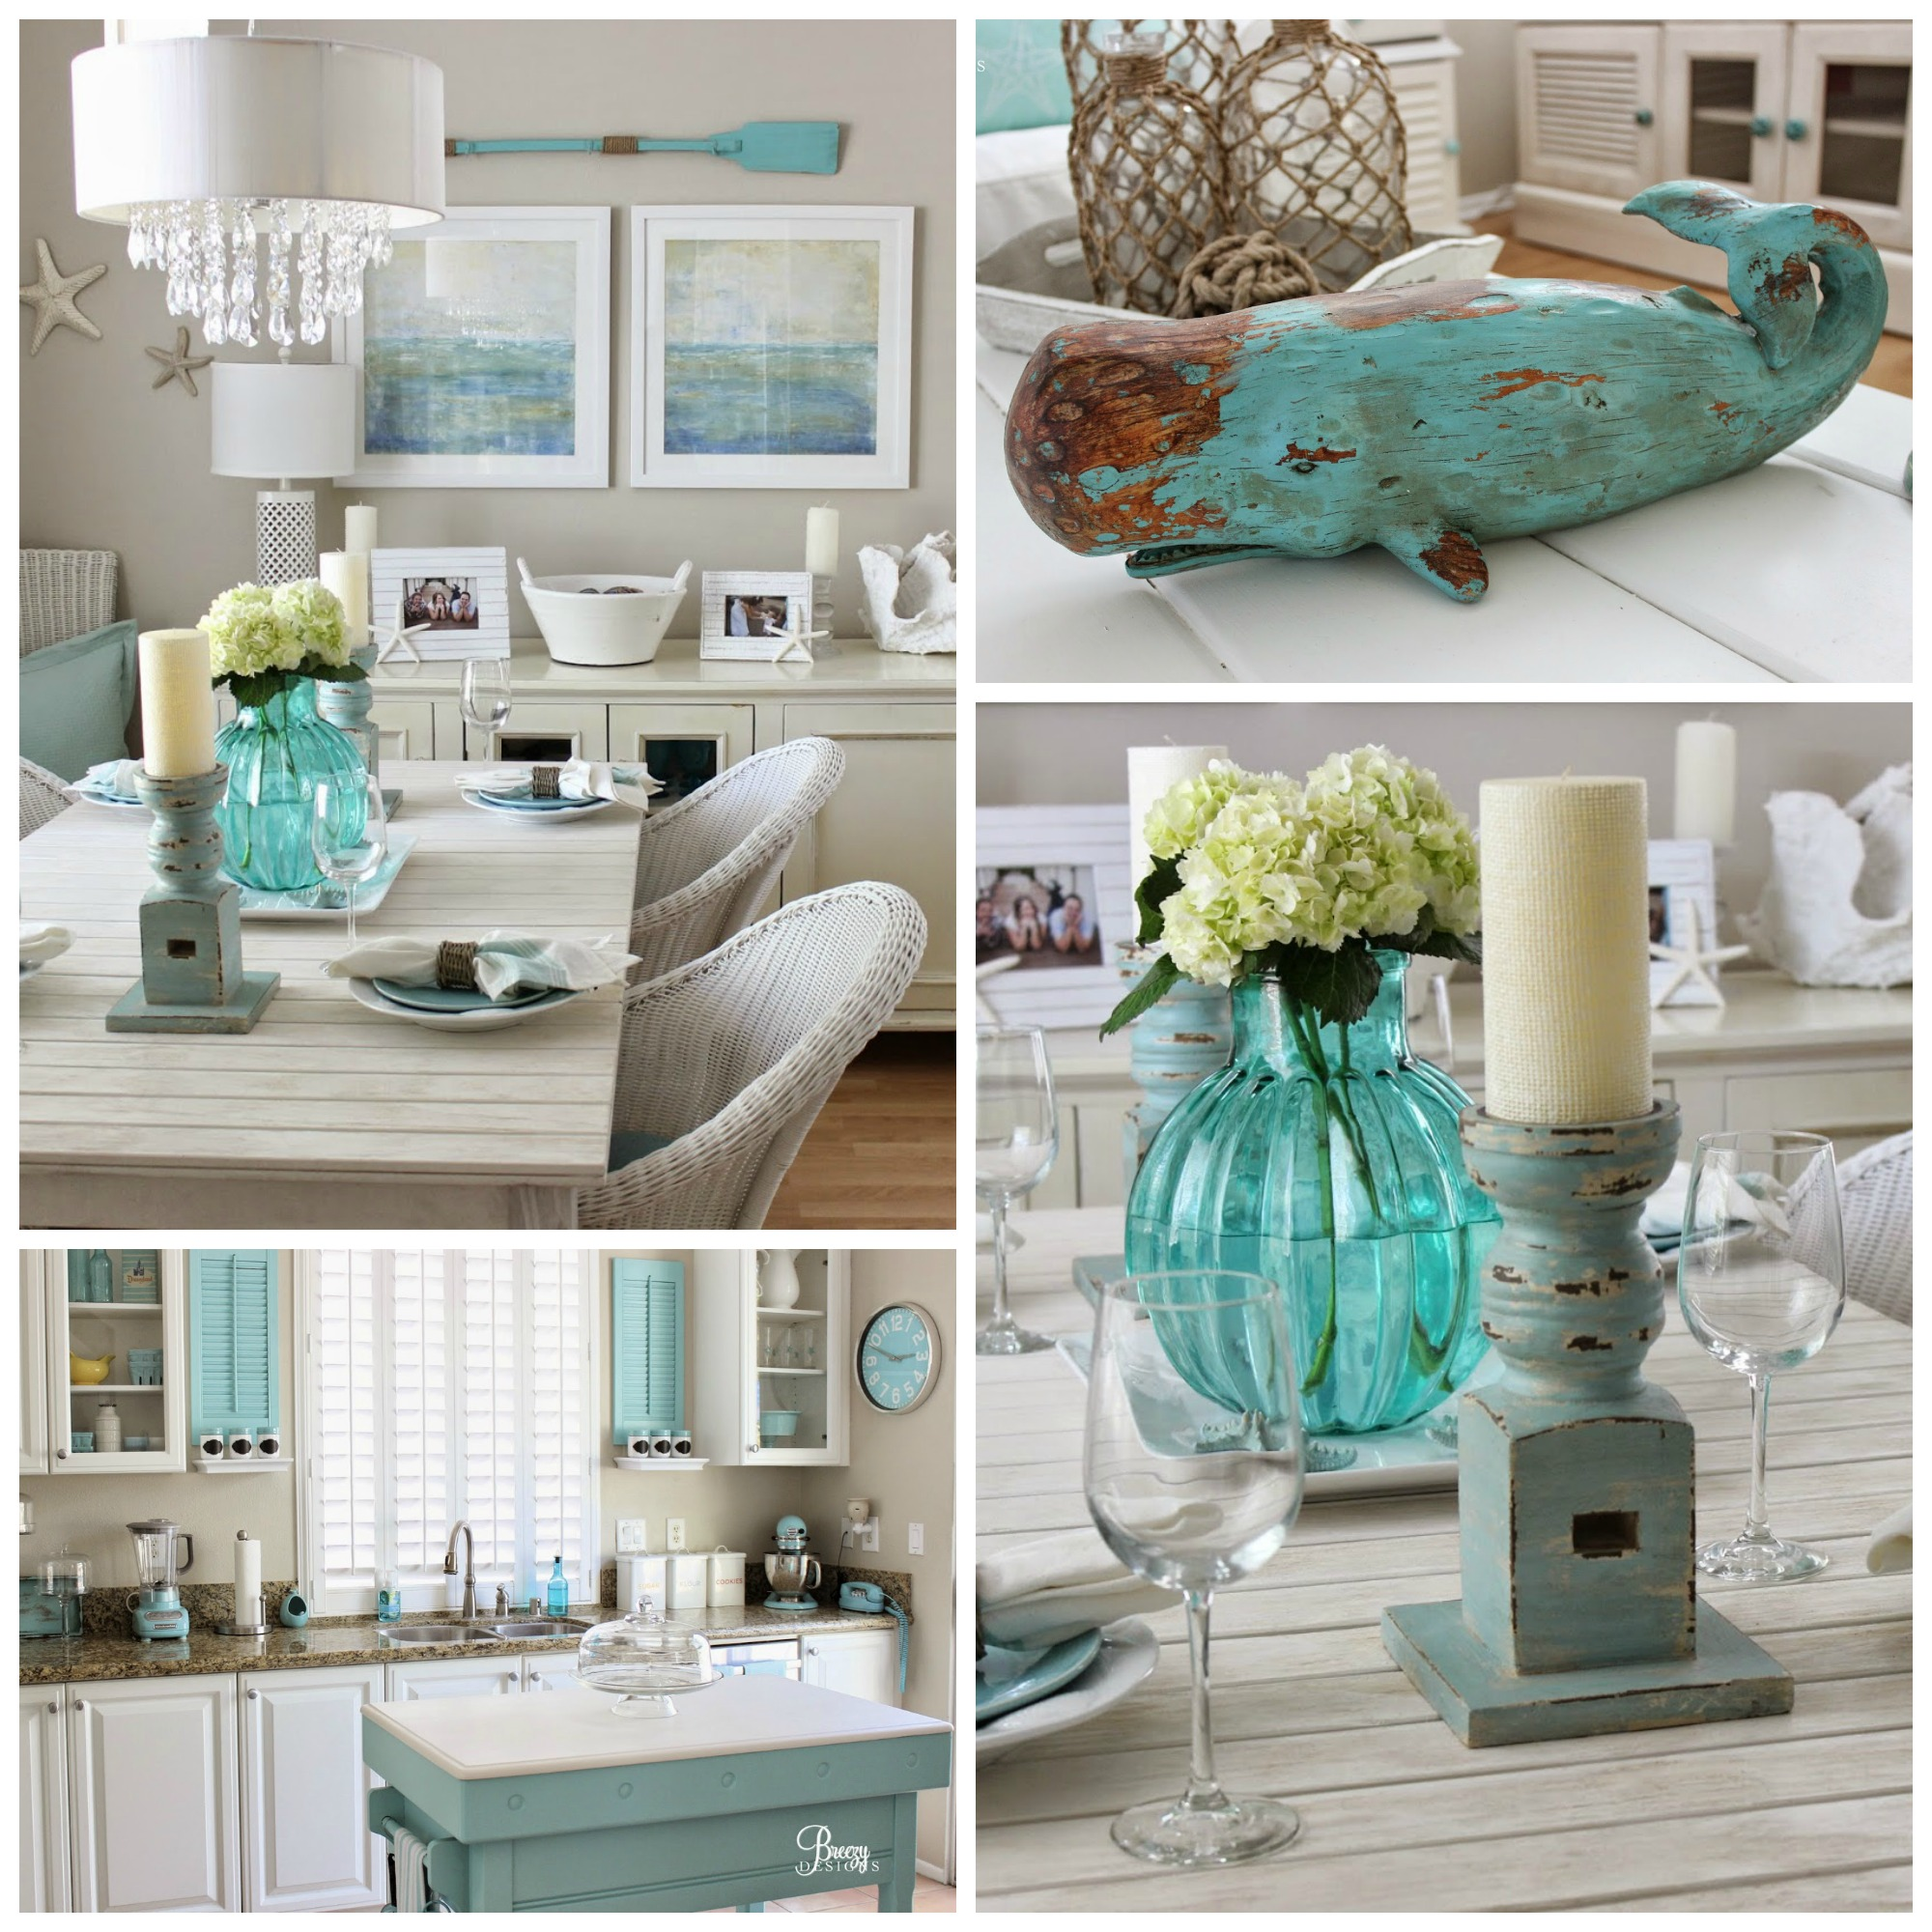 Beach chic coastal cottage home tour with breezy design for Coastal cottage design